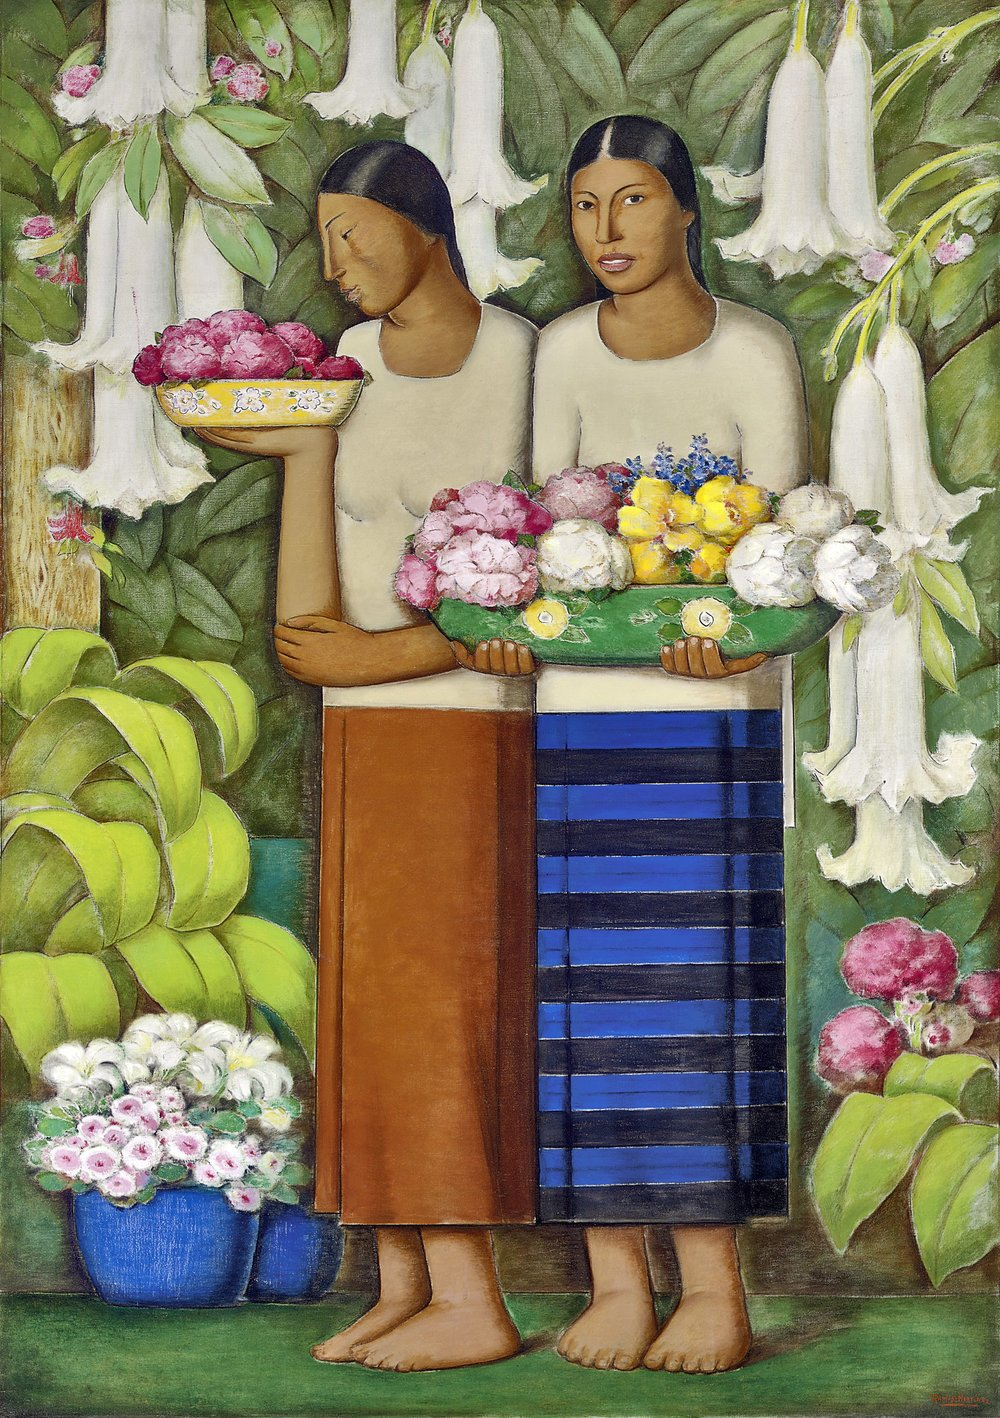 Flores de México / Flowers of Mexico  ca. 1938 oil on canvas / óleo sobre tela 63.3 x 44.1 inches; 160.7 x 112.1 centímetros Private collection